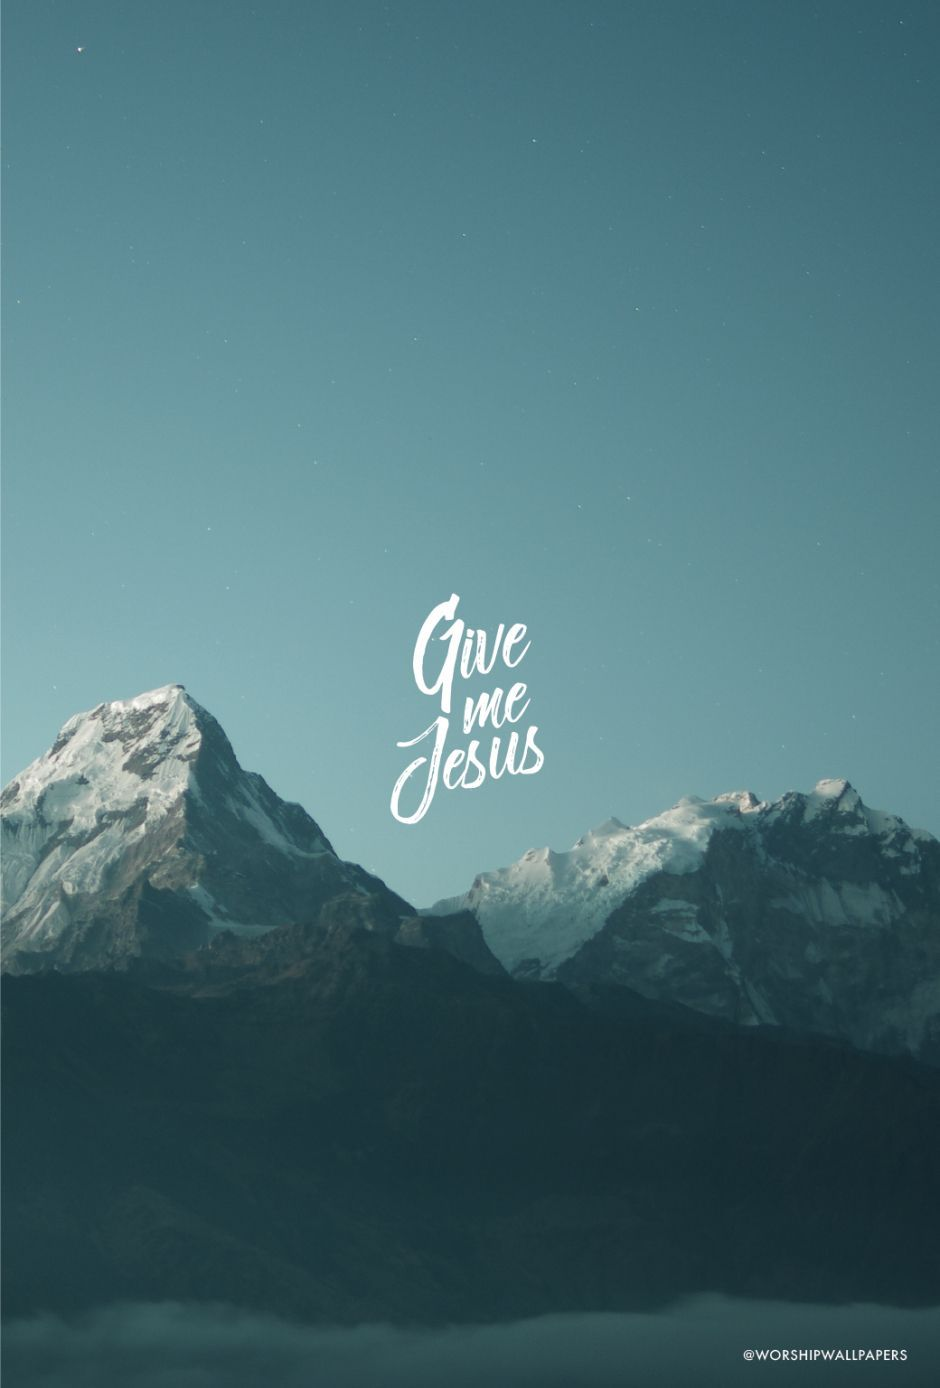 Christian iPhone Wallpapers (80 Wallpapers) – HD Wallpapers | Faith and God | Worship wallpaper ...